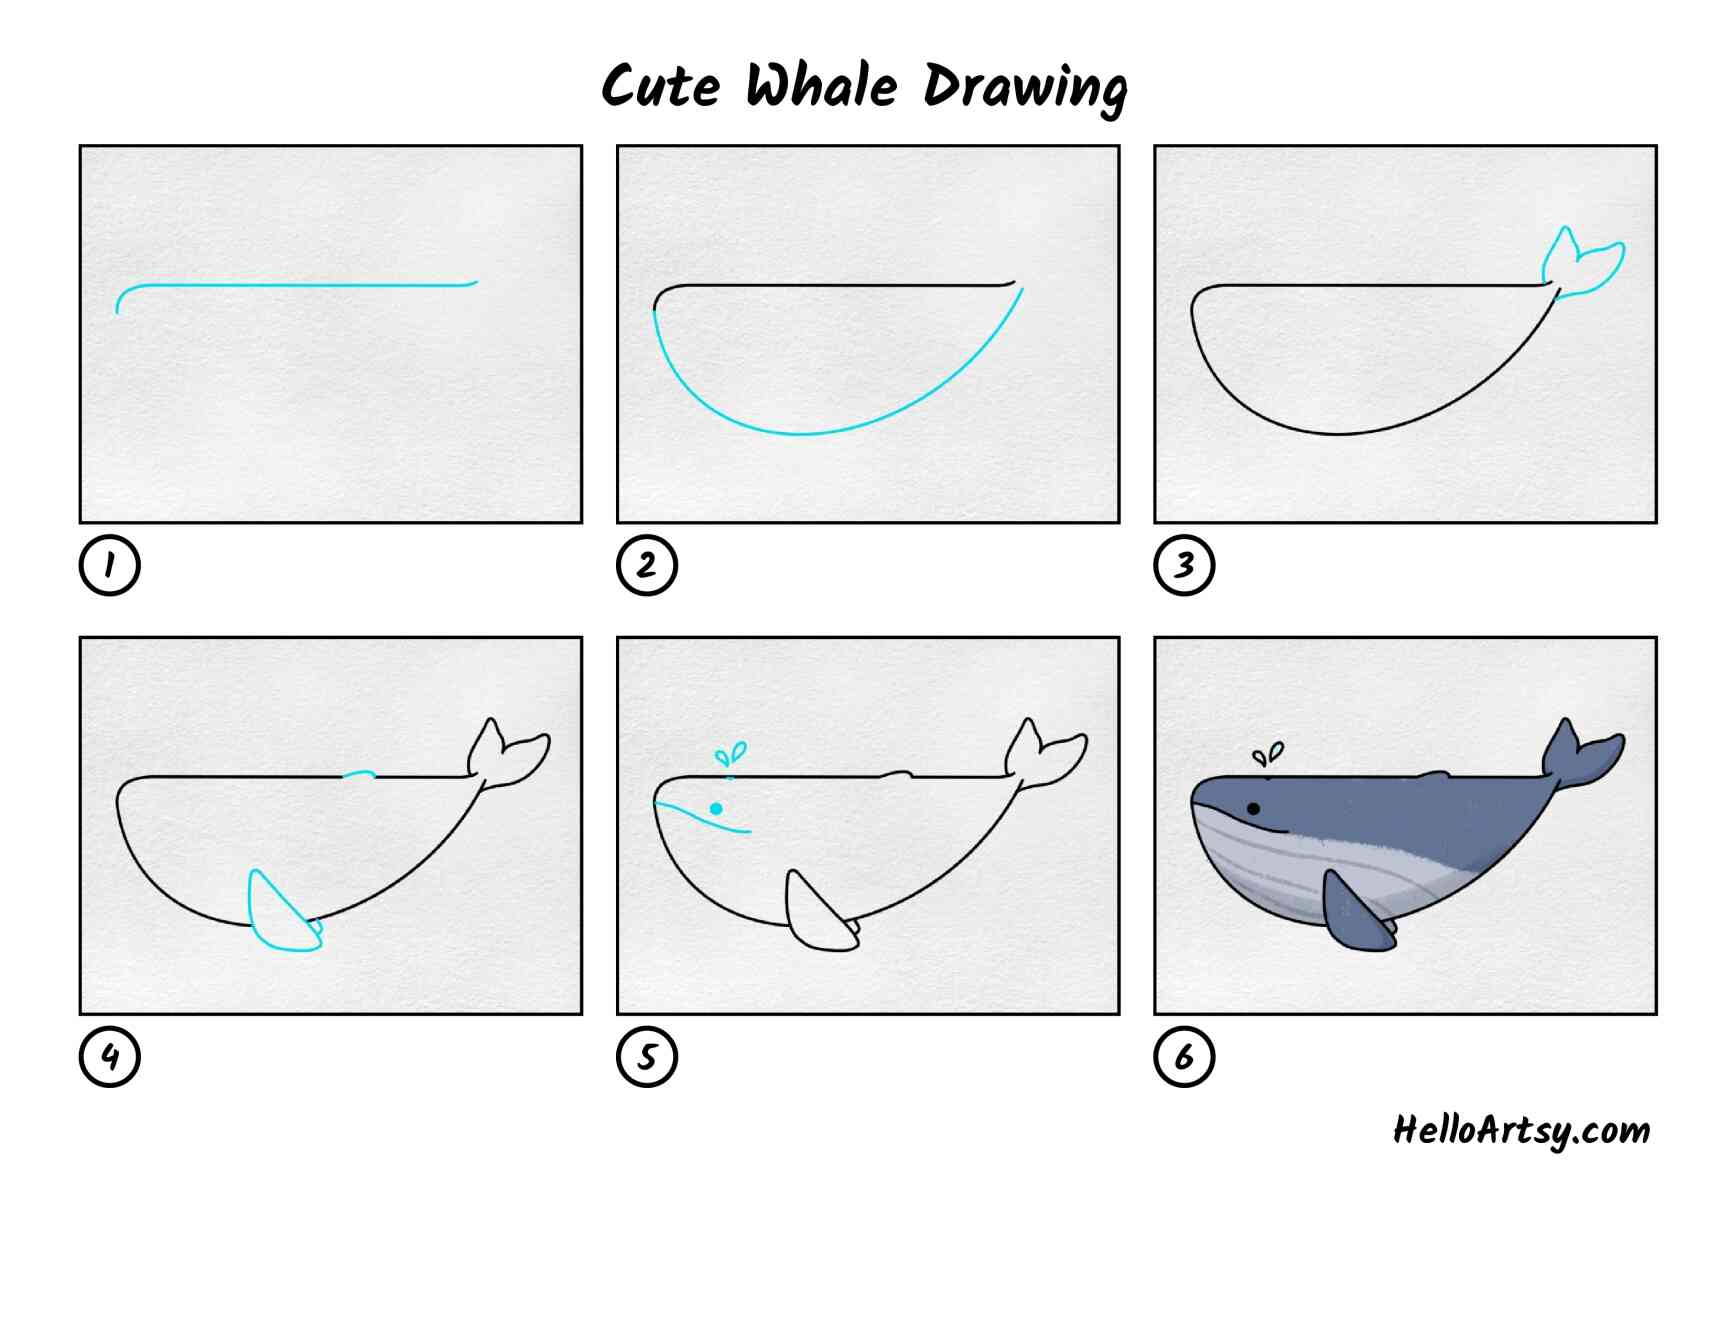 Cute Whale Drawing: All Steps